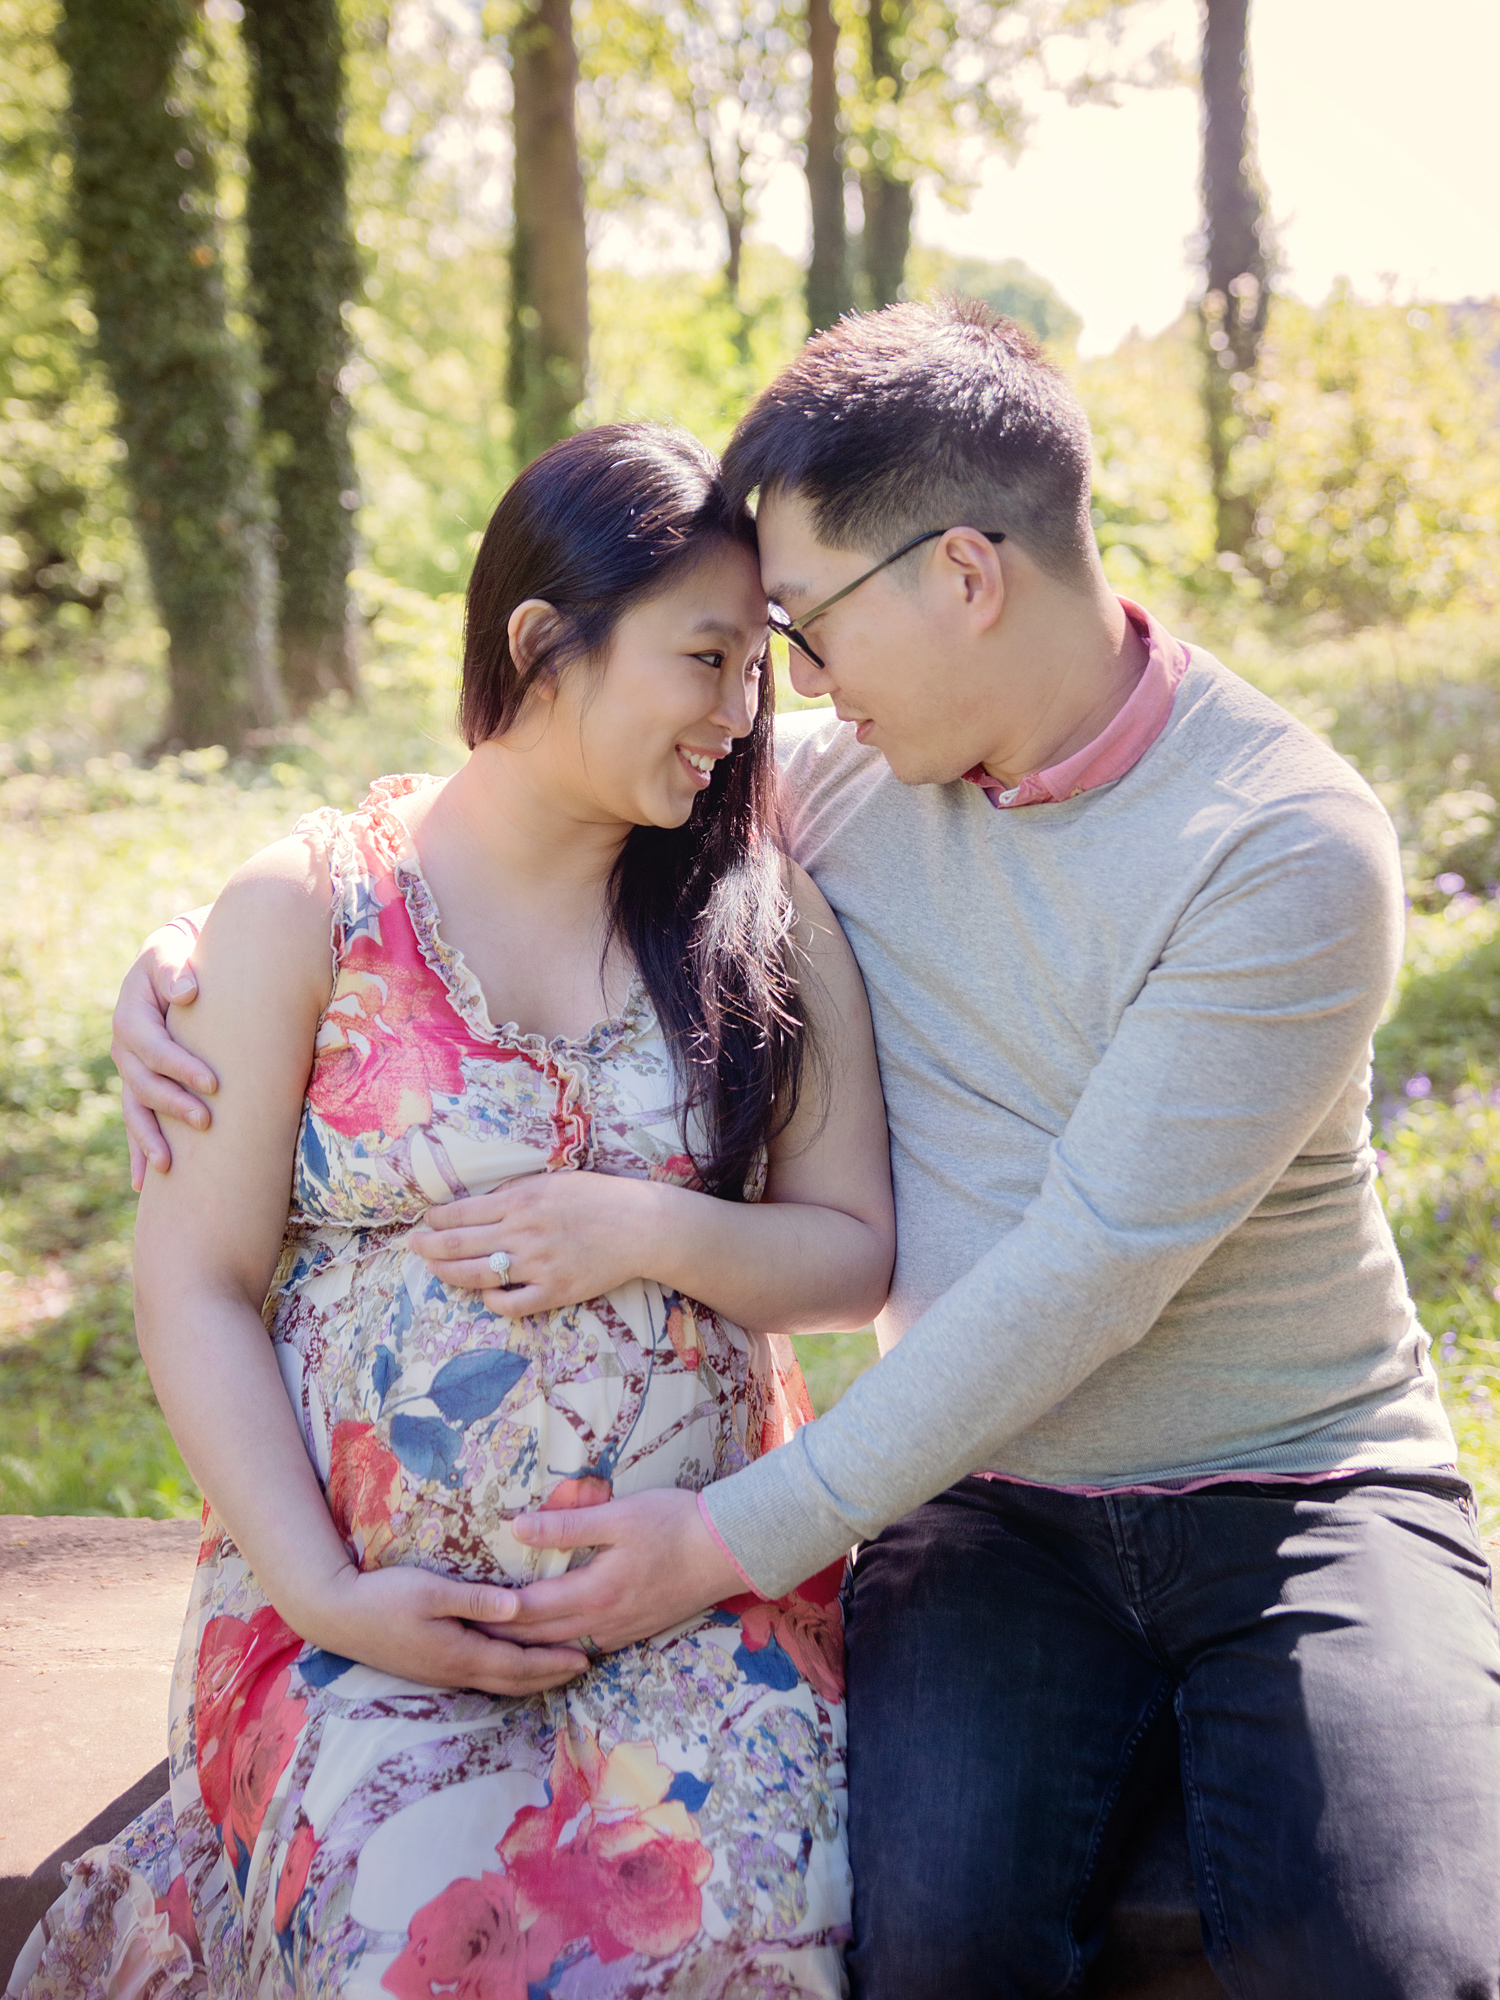 dalkeith country park mum with partner pregnancy maternity photography edinburgh midlothian